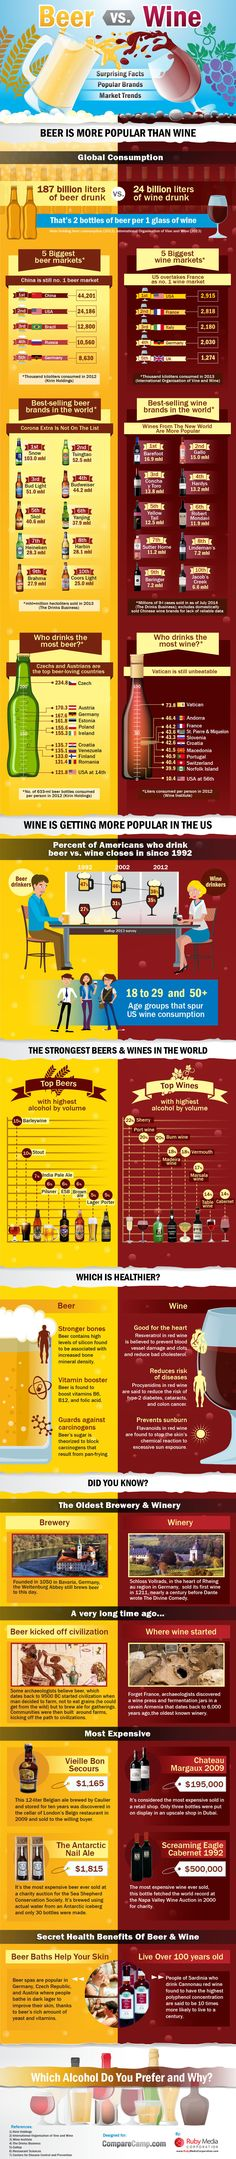 Surprising facts, popular brands, and current market trends in the endless debate between beer and wine